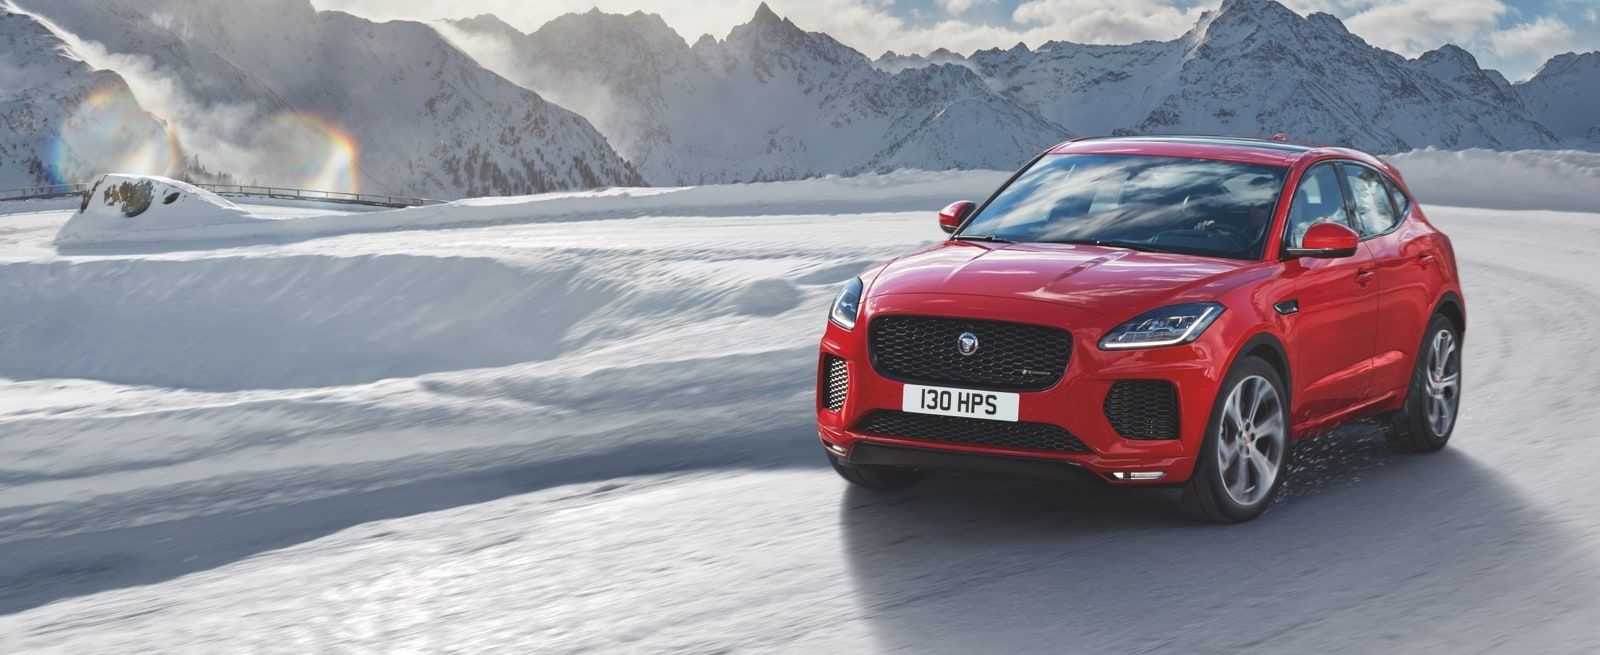 A Red Jaguar E-Pace Driving Driving on a Snow Covered Road